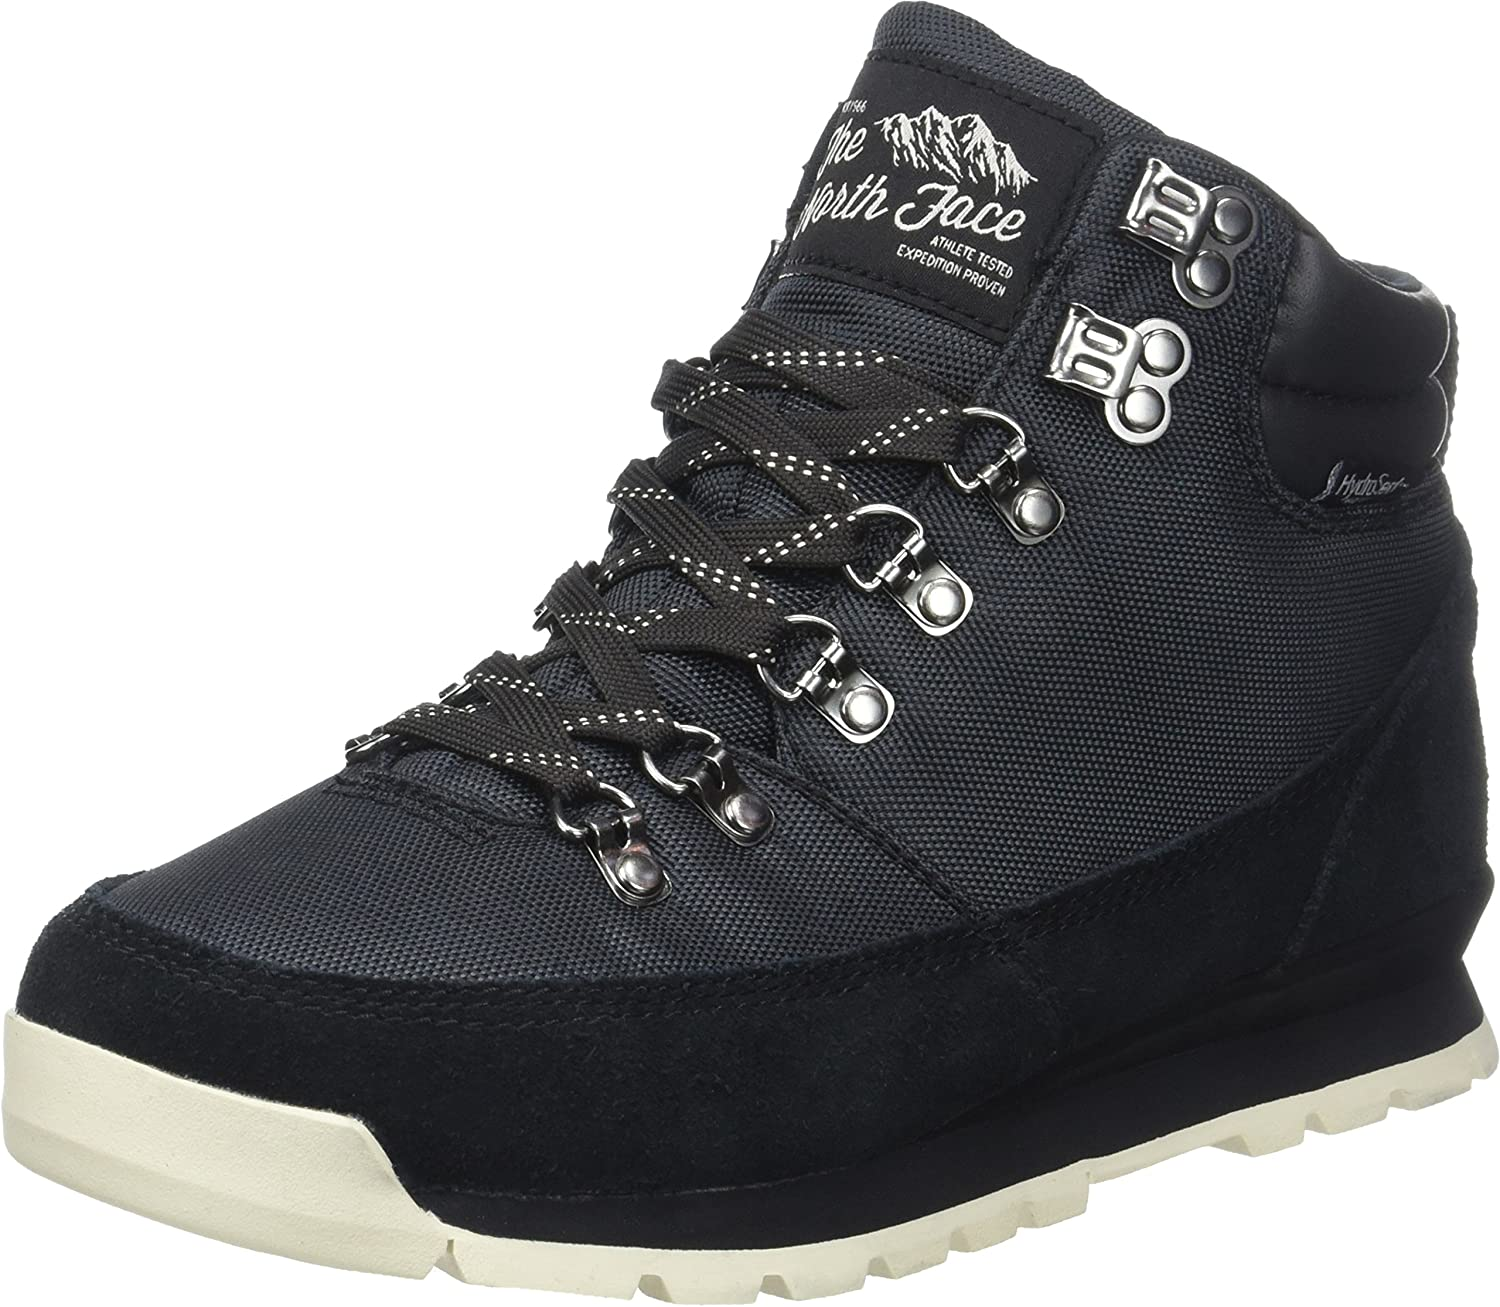 THE NORTH FACE W Back-to-Berk Redux, Botas de Senderismo para Mujer